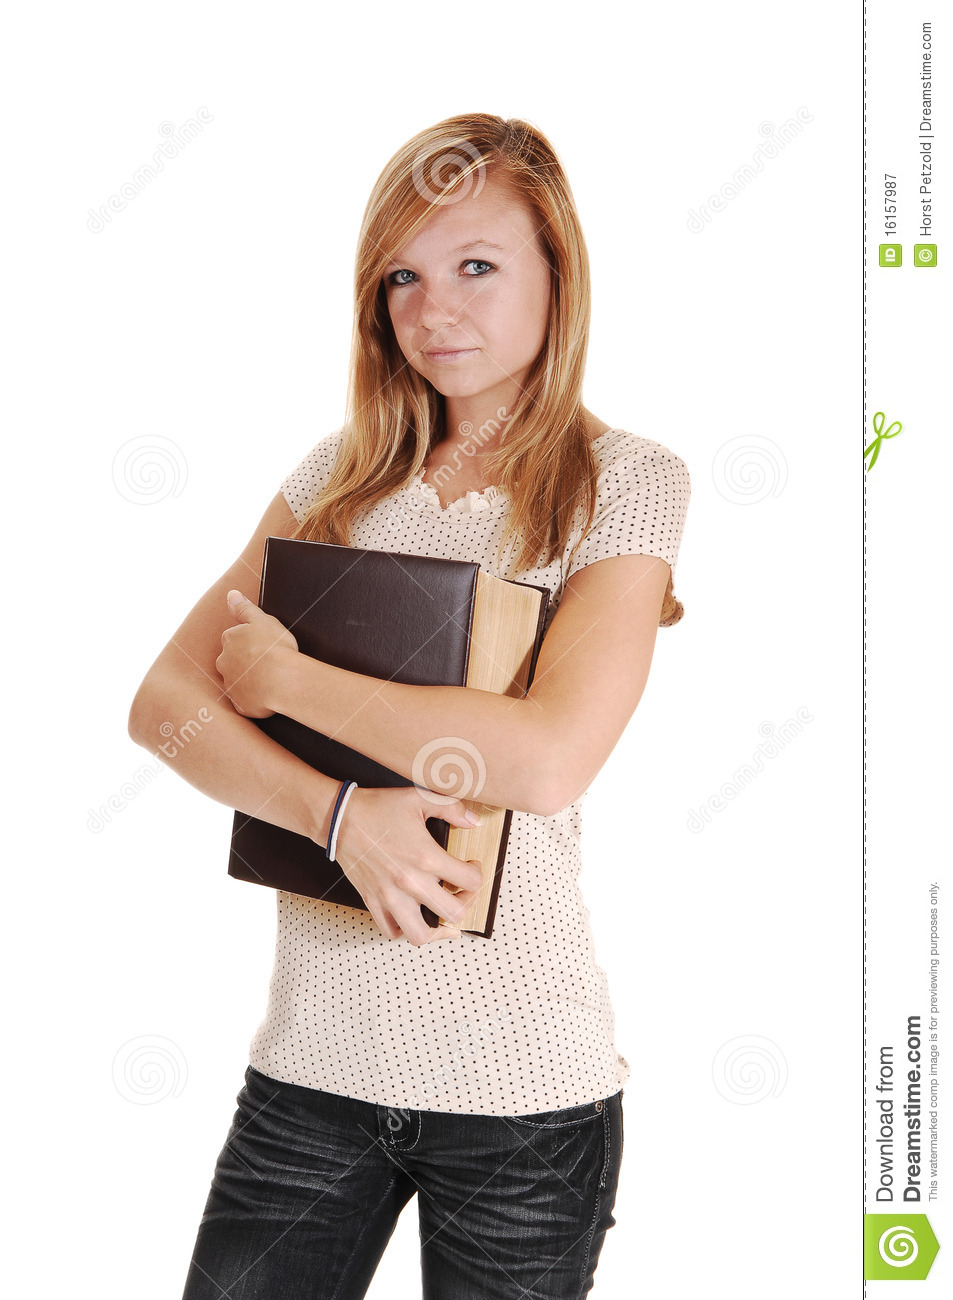 A girl holding a book. Big royalty free stock